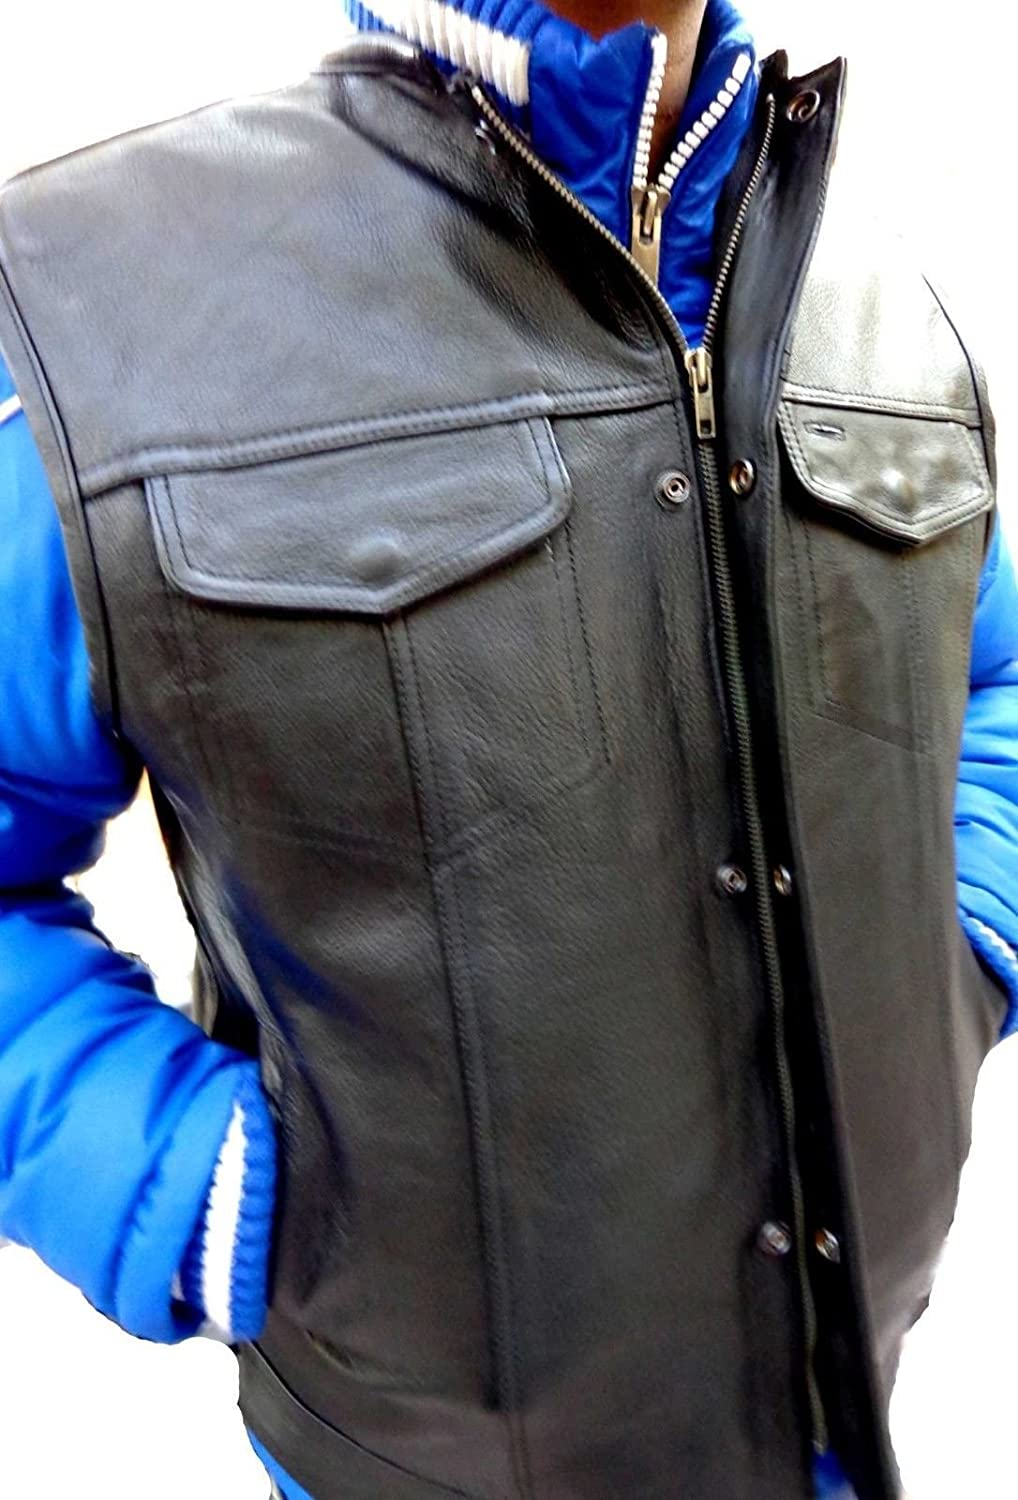 Men's Motorcycle Son of Anarchy Style Naked Leather Vest with 2 Gun Pocket